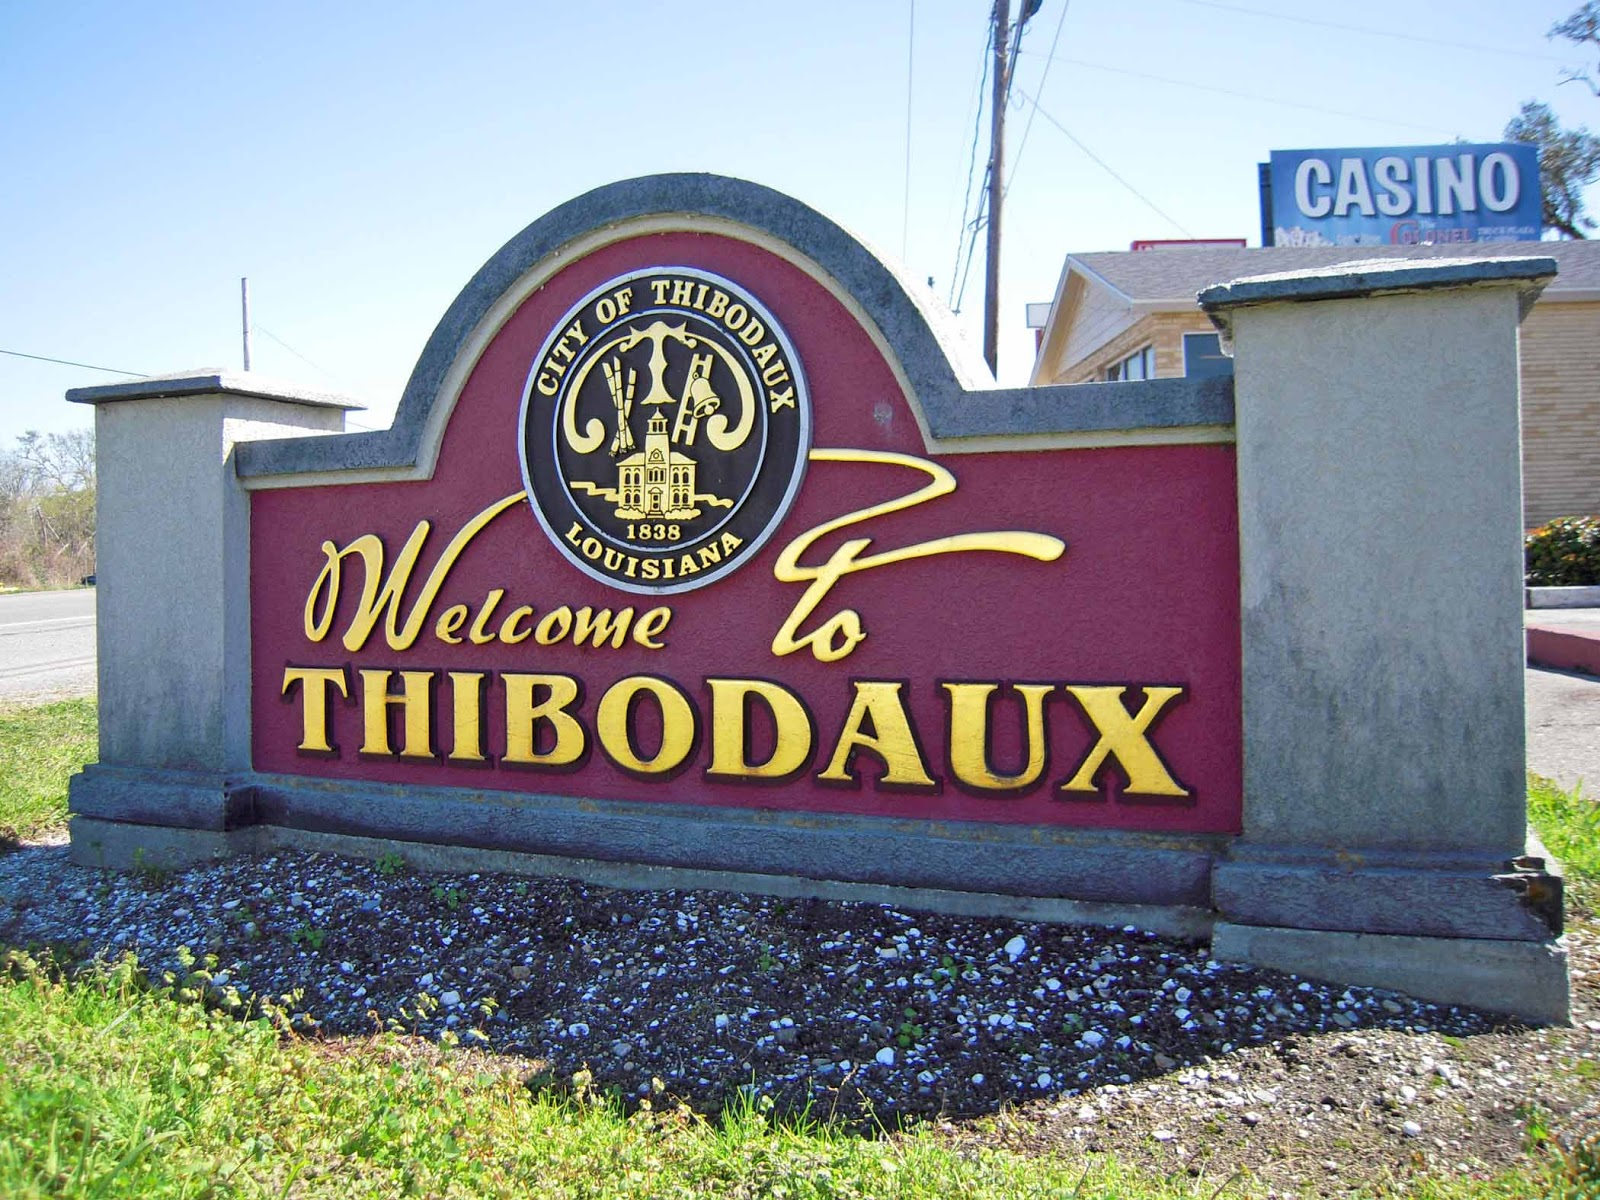 thibodaux dating Search for local single senior women in thibodaux online dating brings singles together who may never otherwise meet it's a big world and the seniorpeoplemeetcom community wants to help you connect with singles in your area.